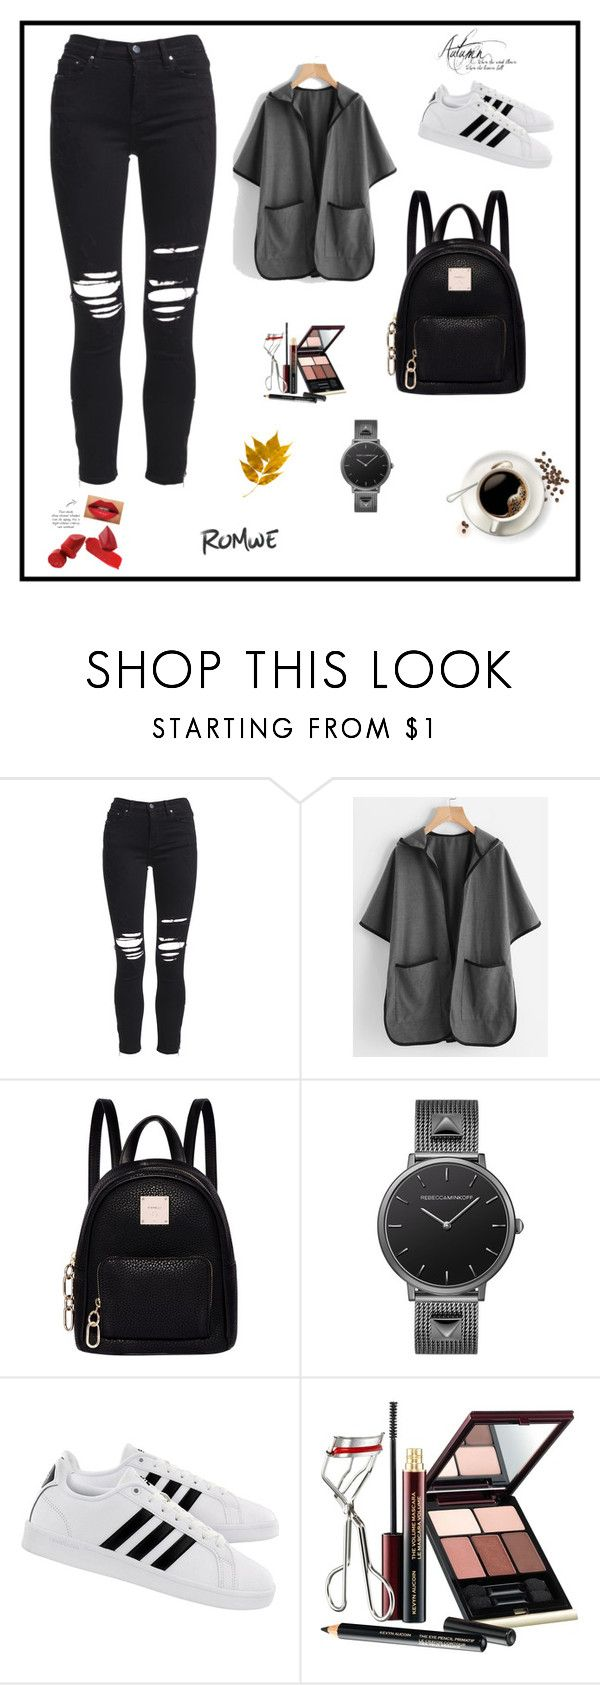 """""""...."""" by selmamehinovic112 ❤ liked on Polyvore featuring AMIRI, Fiorelli, Rebecca Minkoff, adidas and Kevyn Aucoin"""